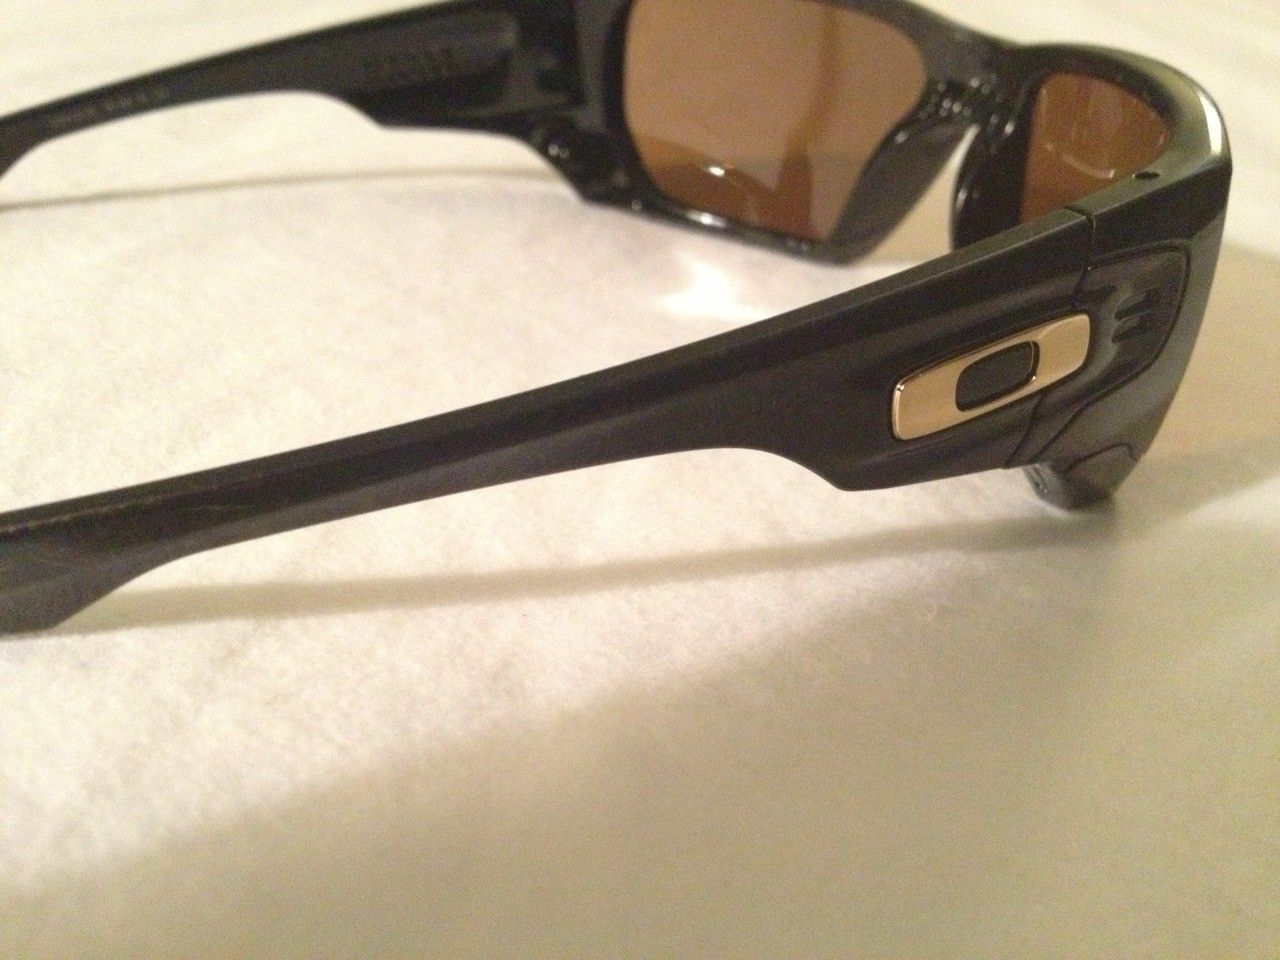 Or WTT Style Switch: Polished Black W. Gold Text - tumblr_mt937fqJEX1rbptugo4_r1_1280.jpg